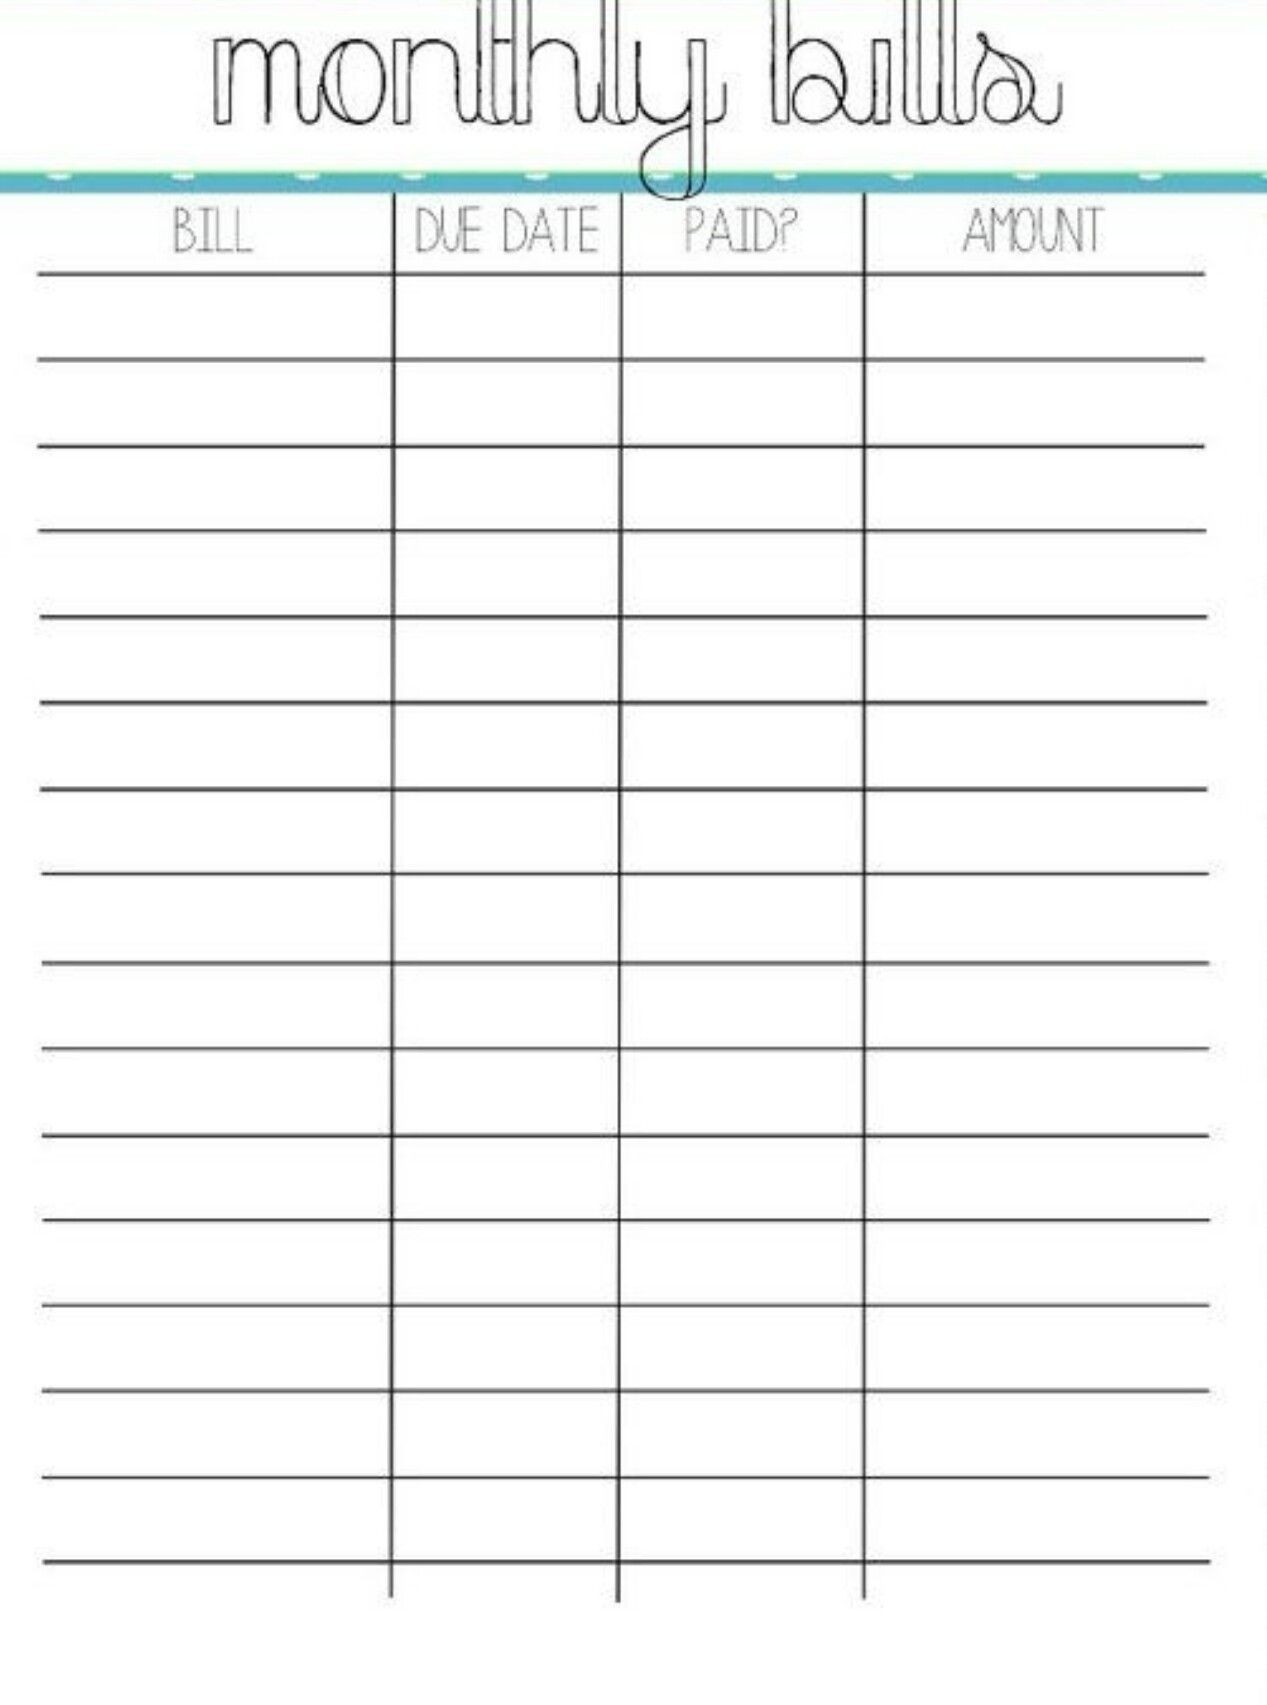 Pin By Crystal On Bills | Organizing Monthly Bills, Bill-Free Printable Monthly Bill Chart